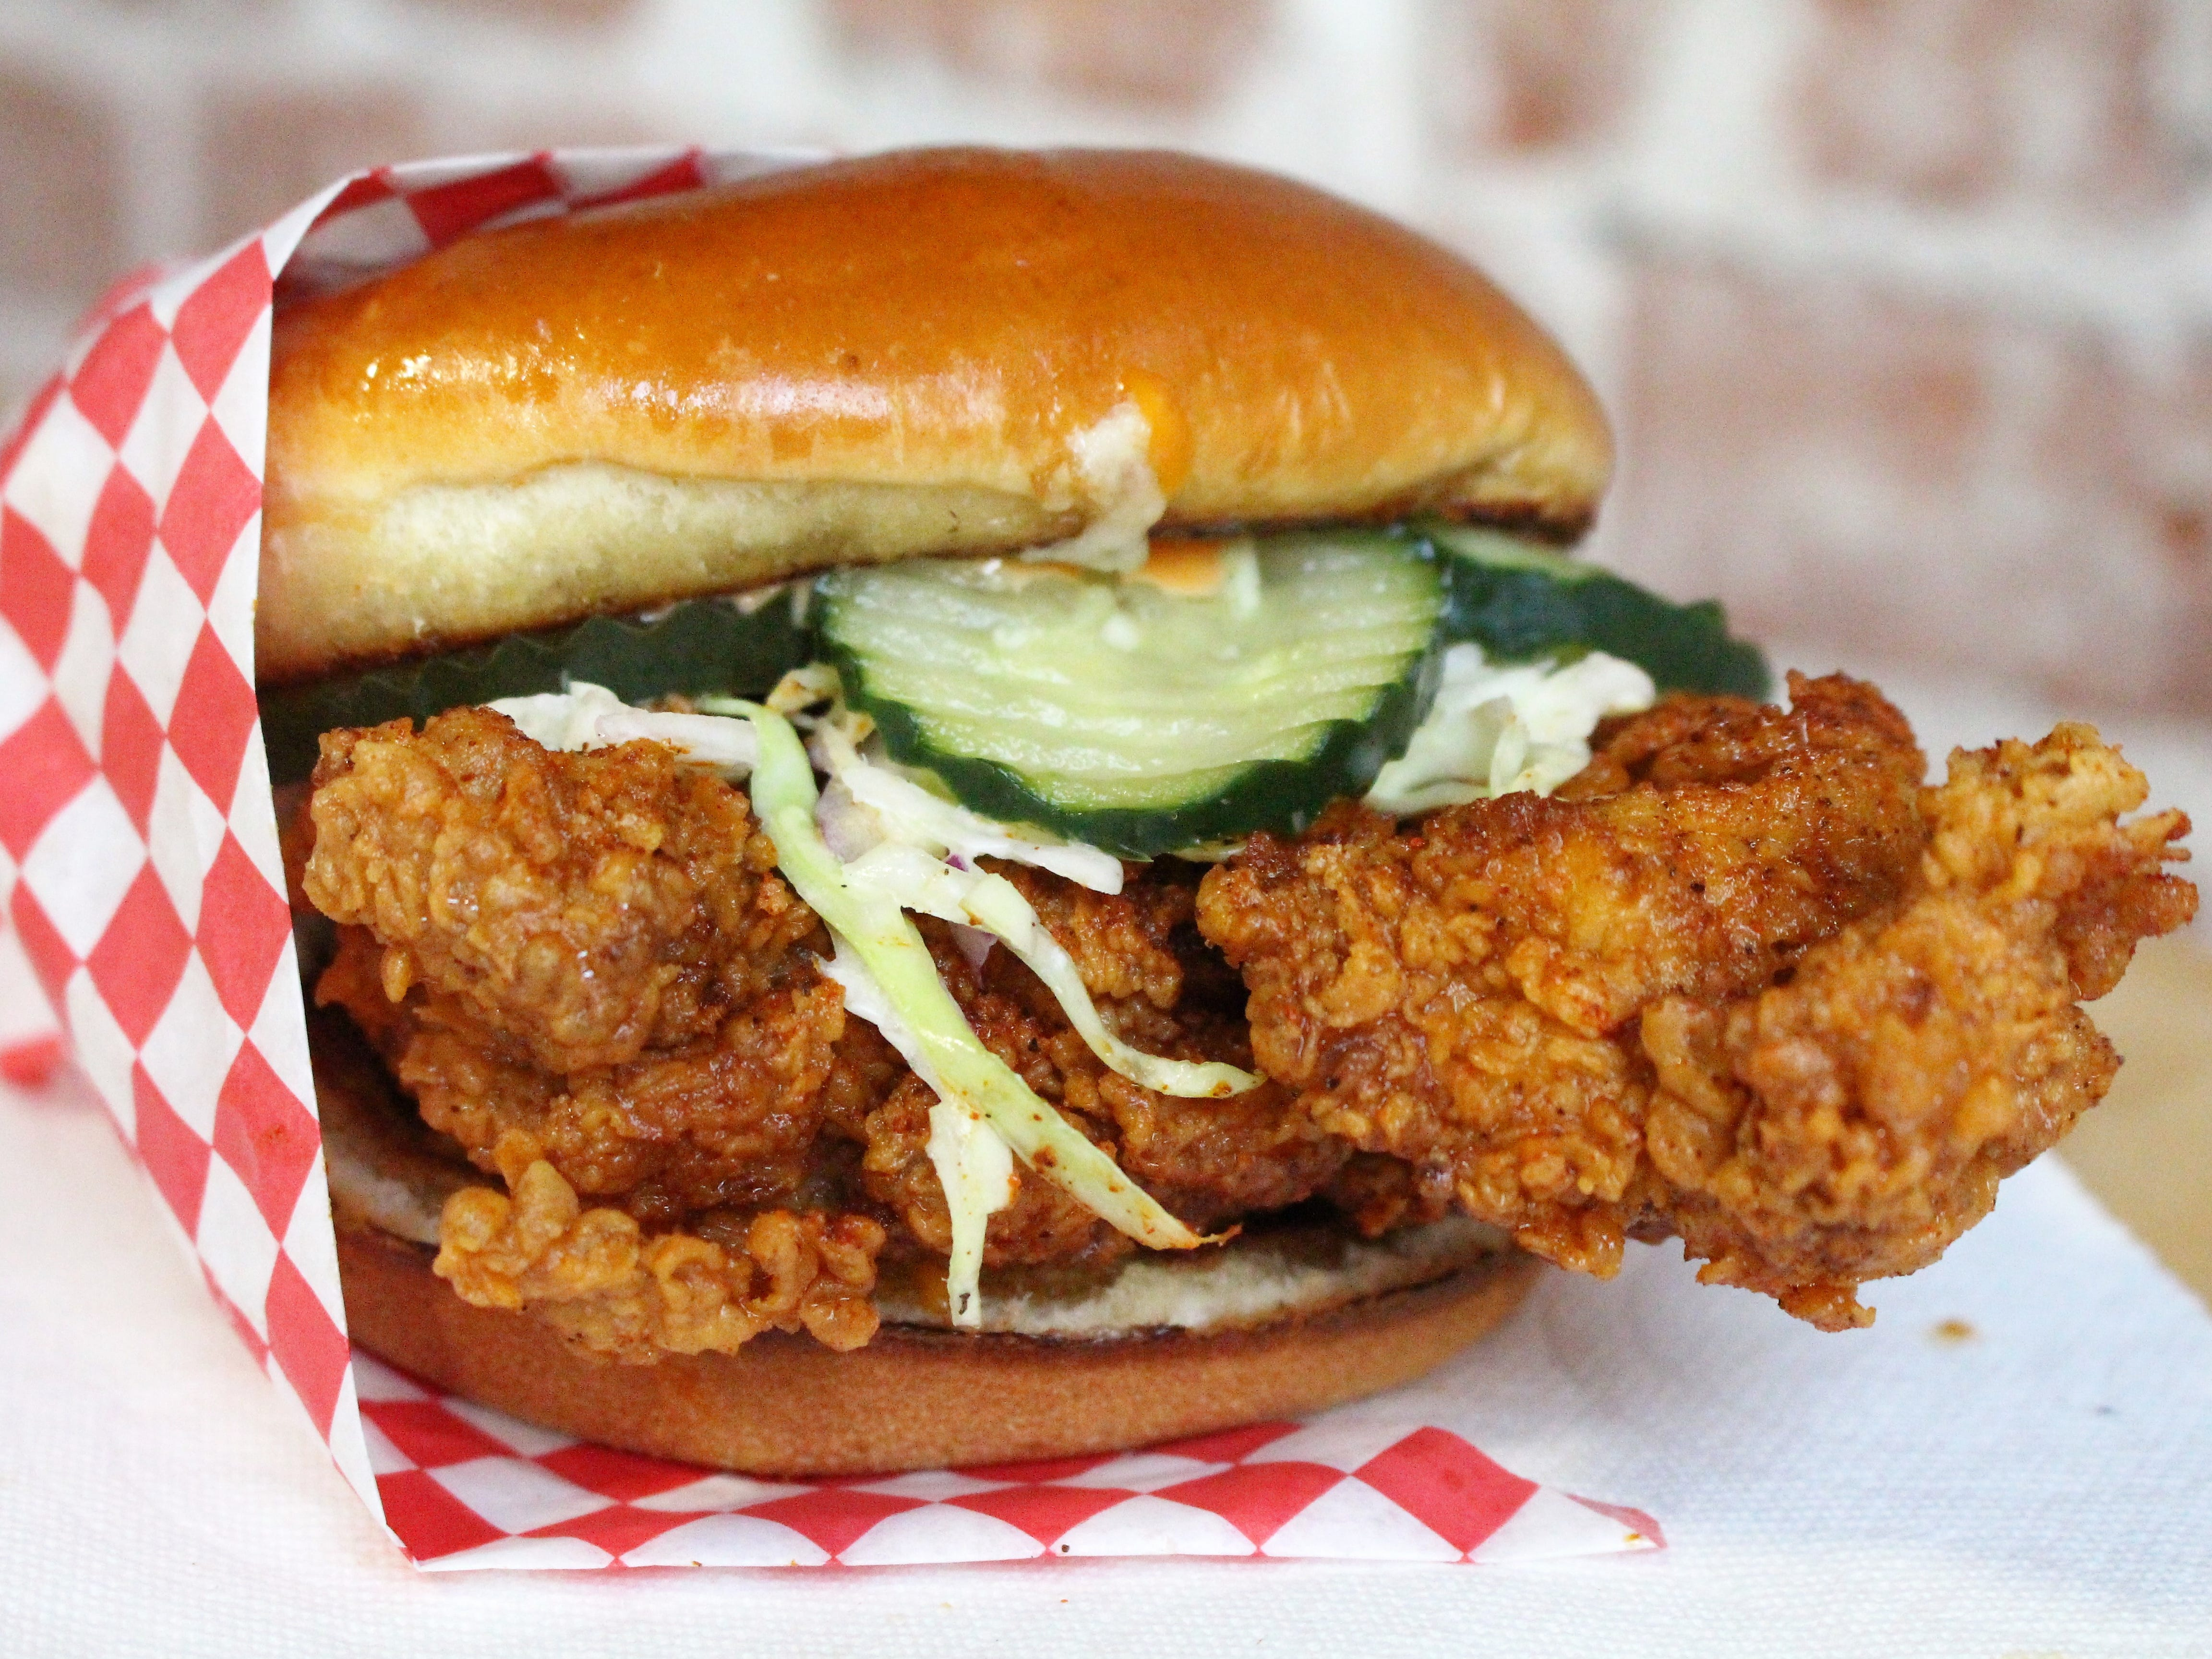 The fried chicken sandwich at Monroe's Hot Chicken in downtown Phoenix.